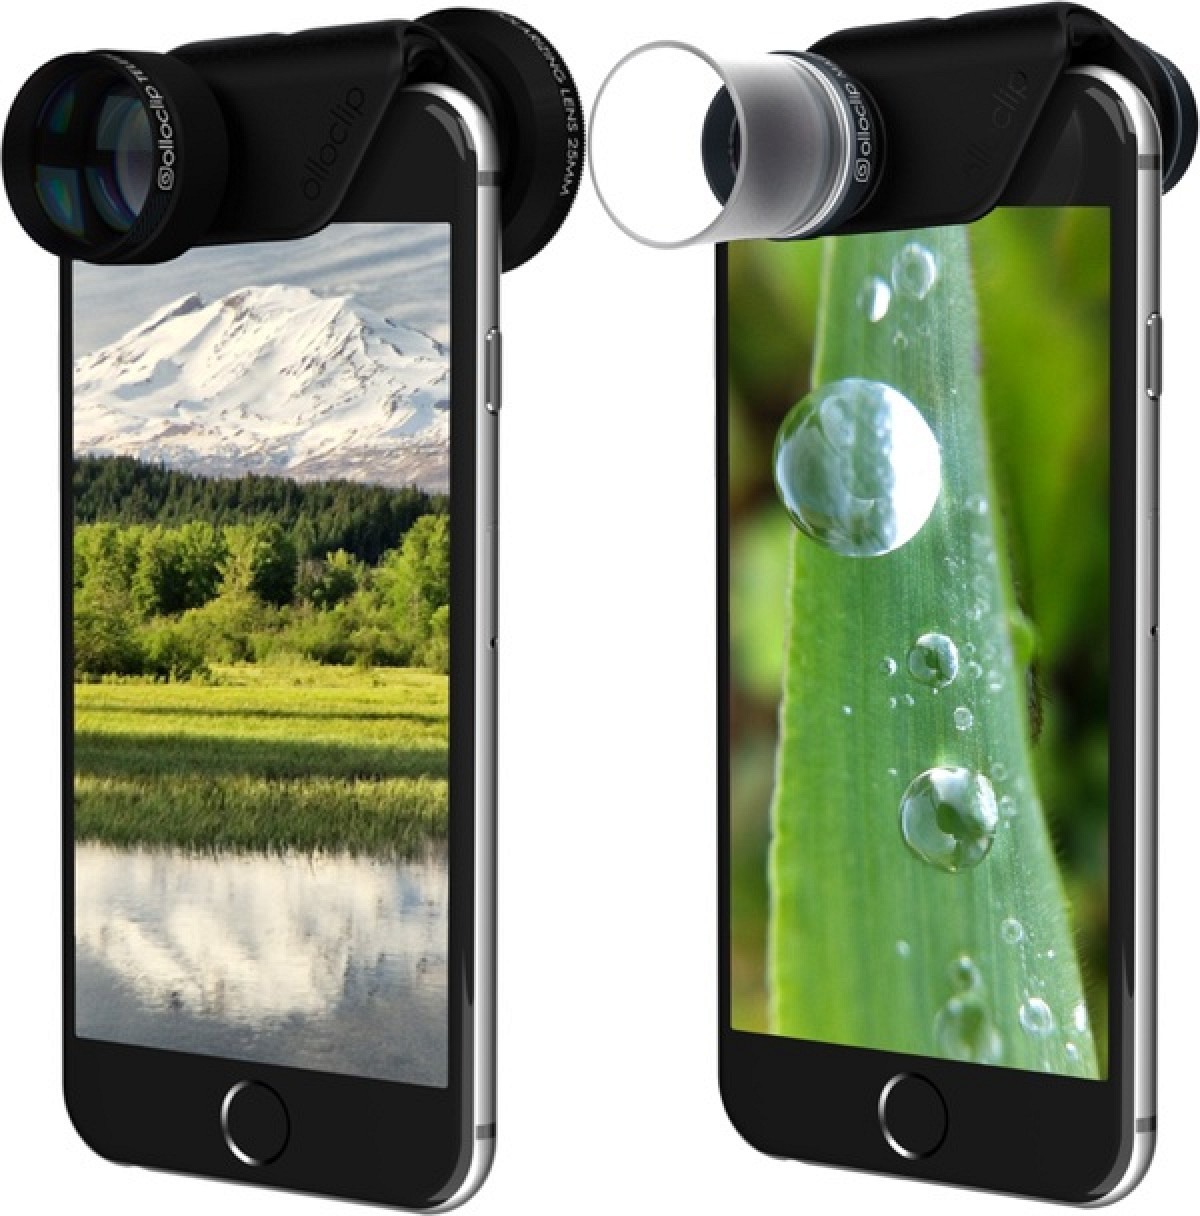 huge selection of b6b76 2ef90 Hands-On With Olloclip's New Telephoto/Polarizing and Macro 3-in-1 ...